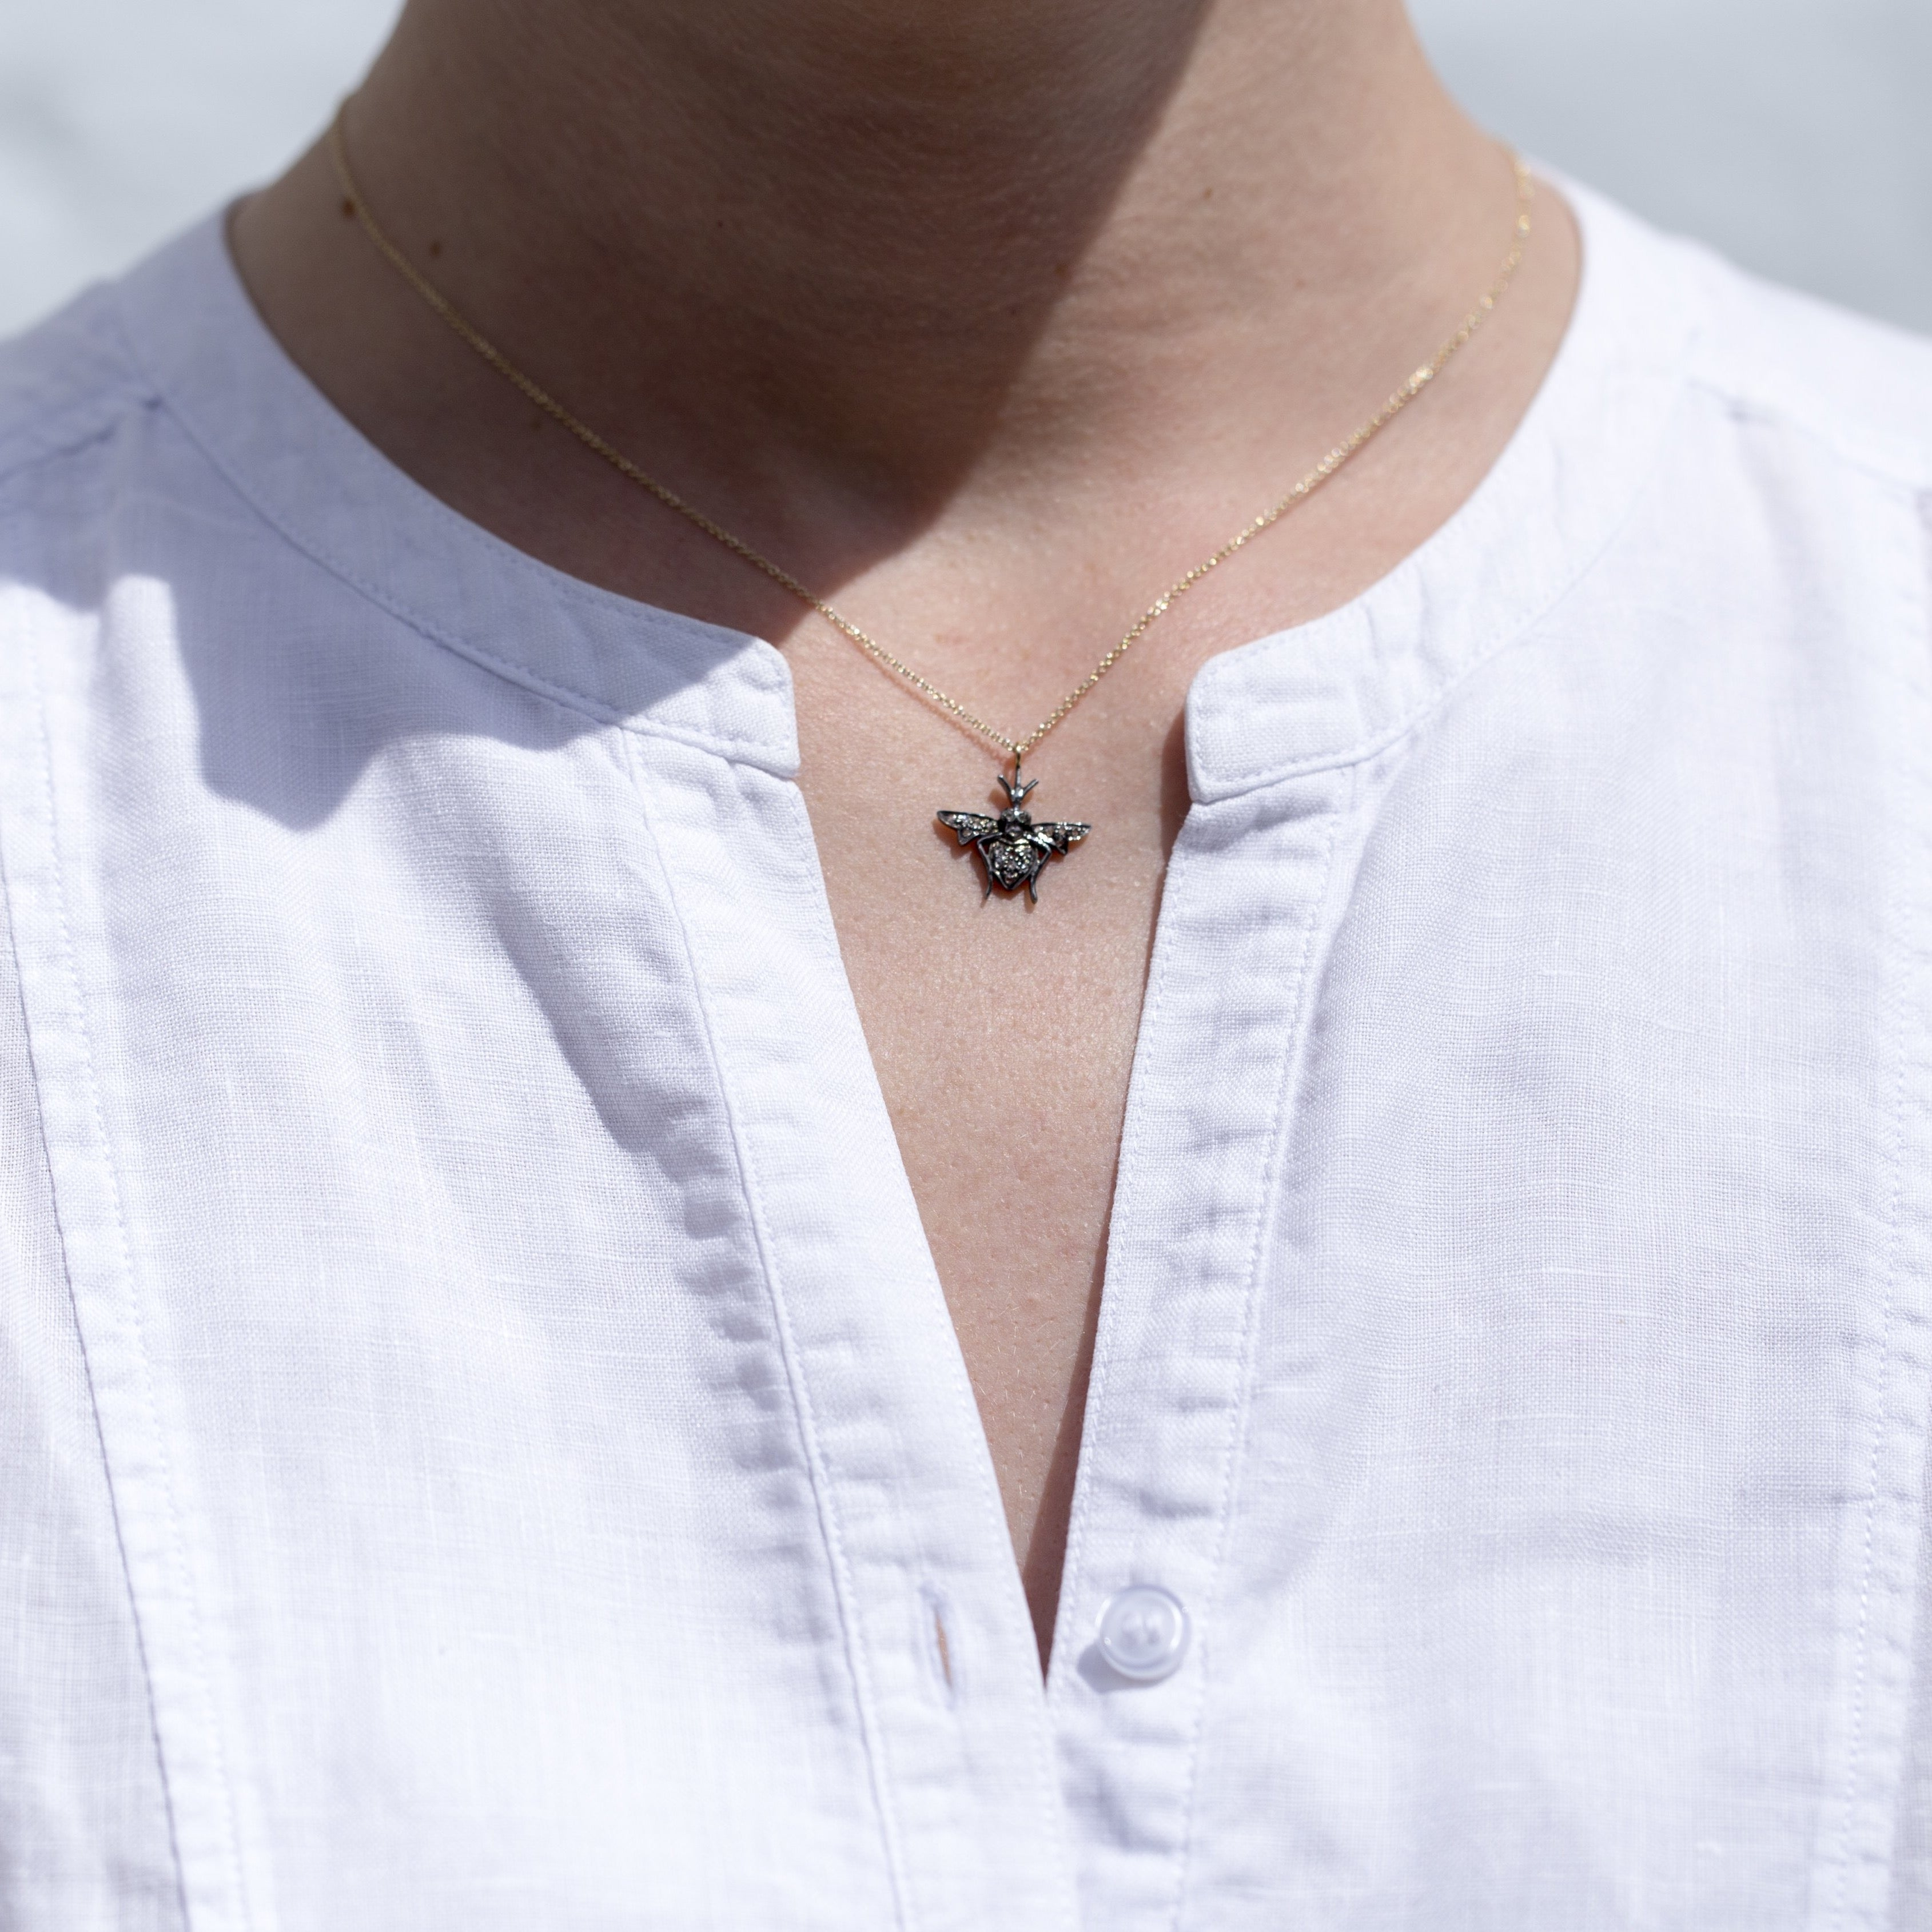 Bumble Bee Pendant with a gold chain as a necklace